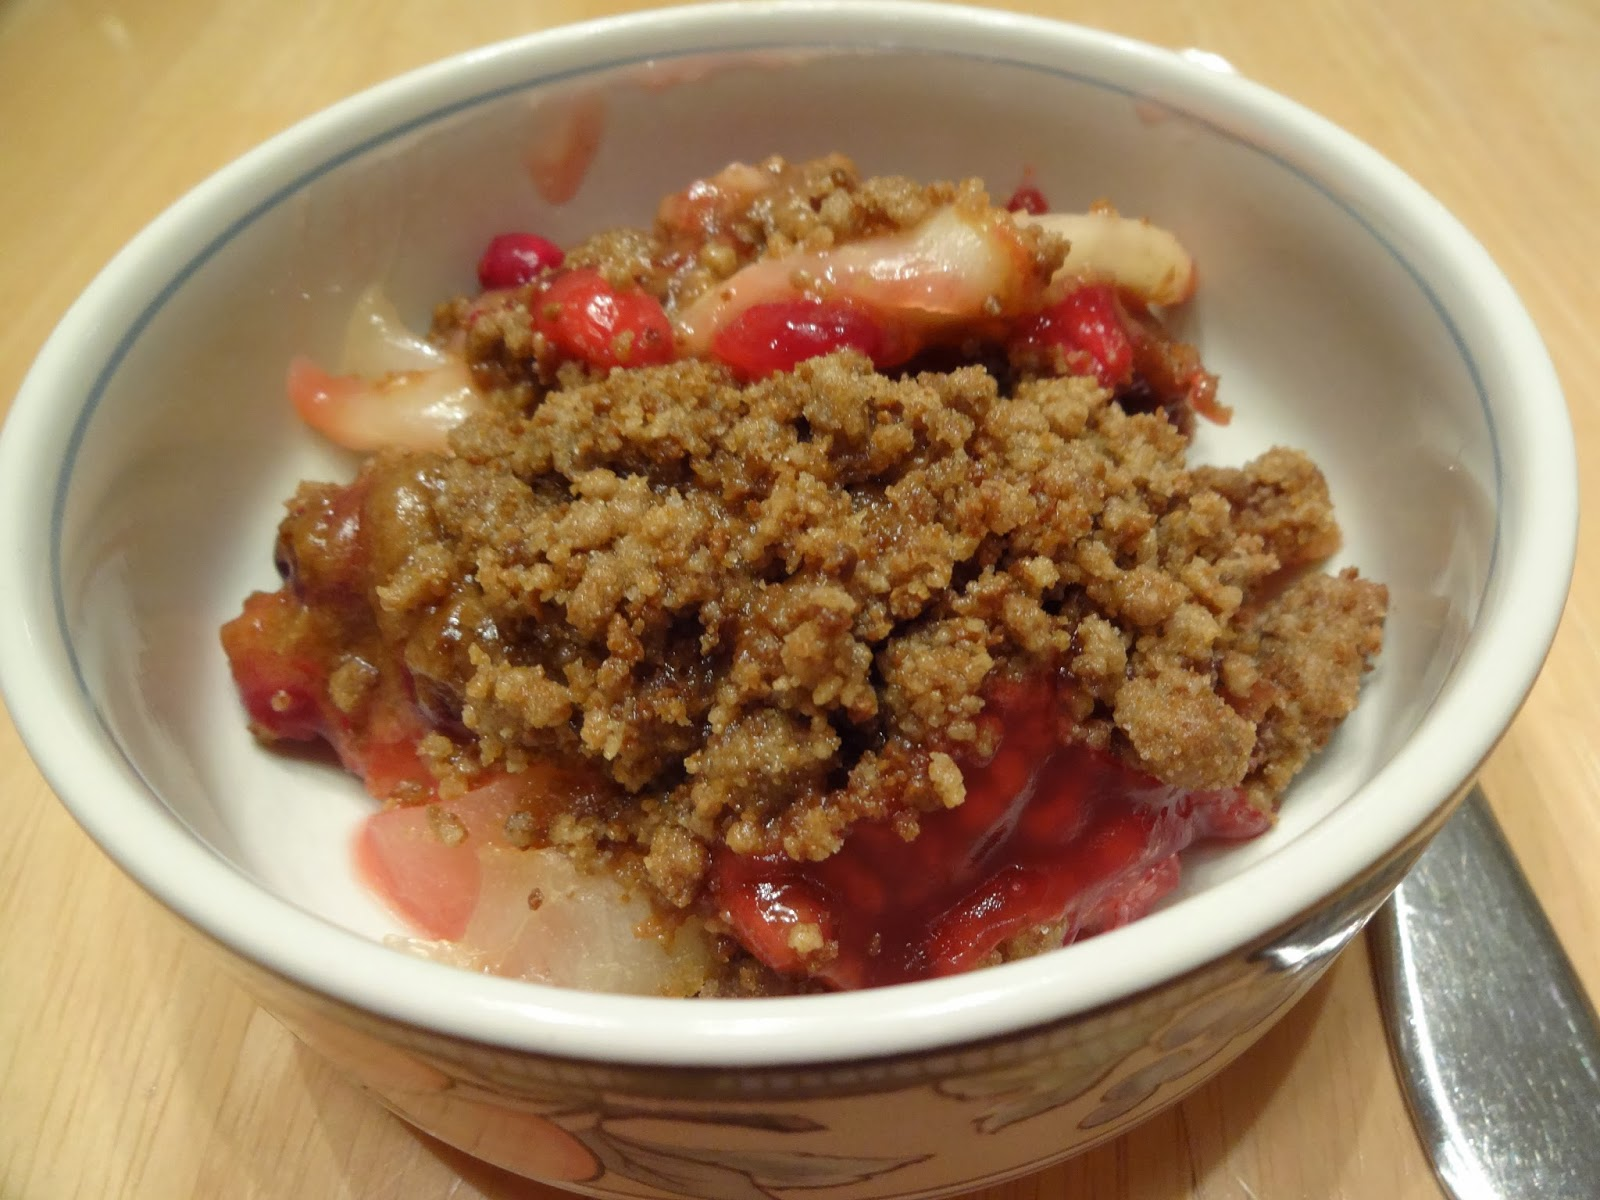 Shenandoah Gateway Farm: Pear, Cranberry and Gingersnap Crumble